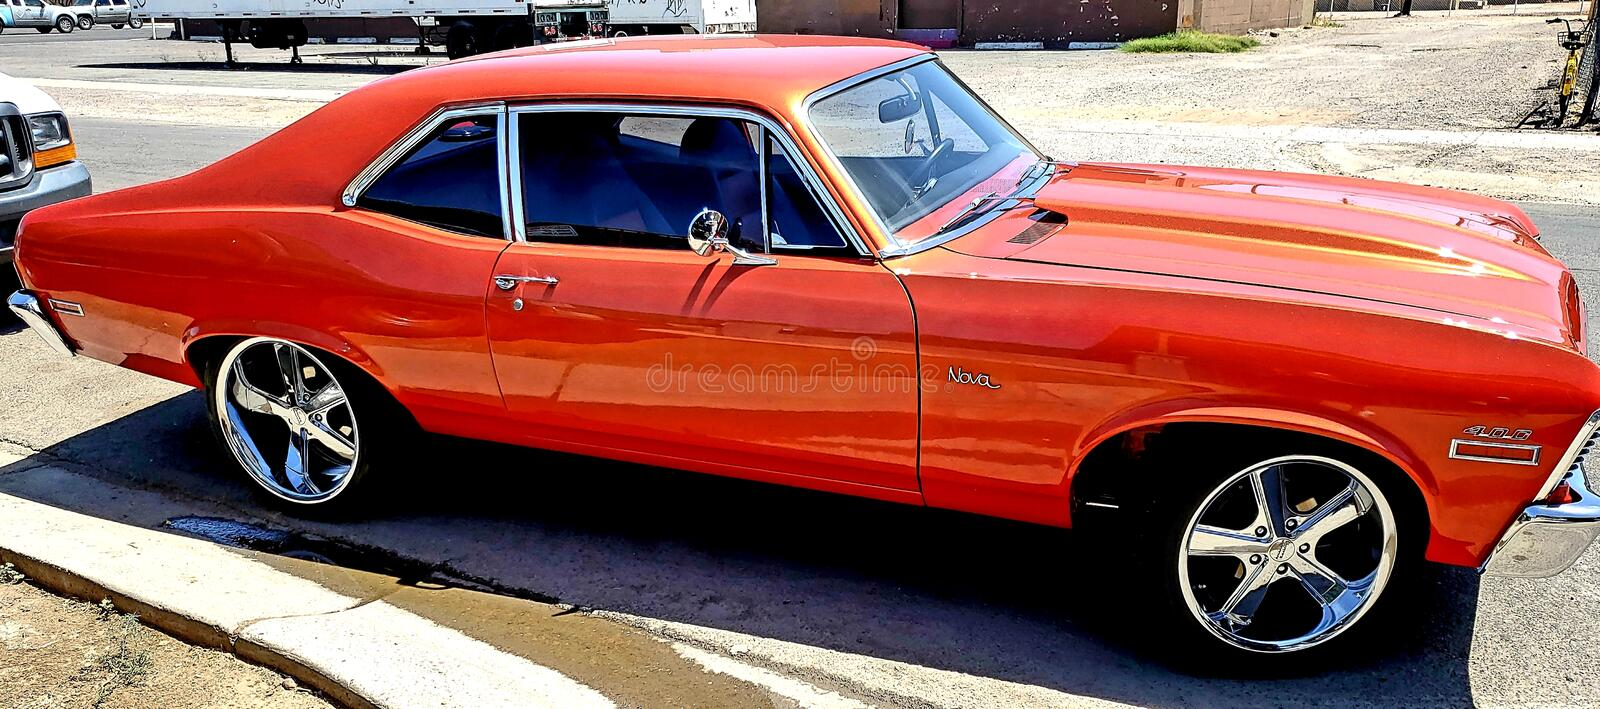 Innovation auto specialist paint and body repair royalty free stock images